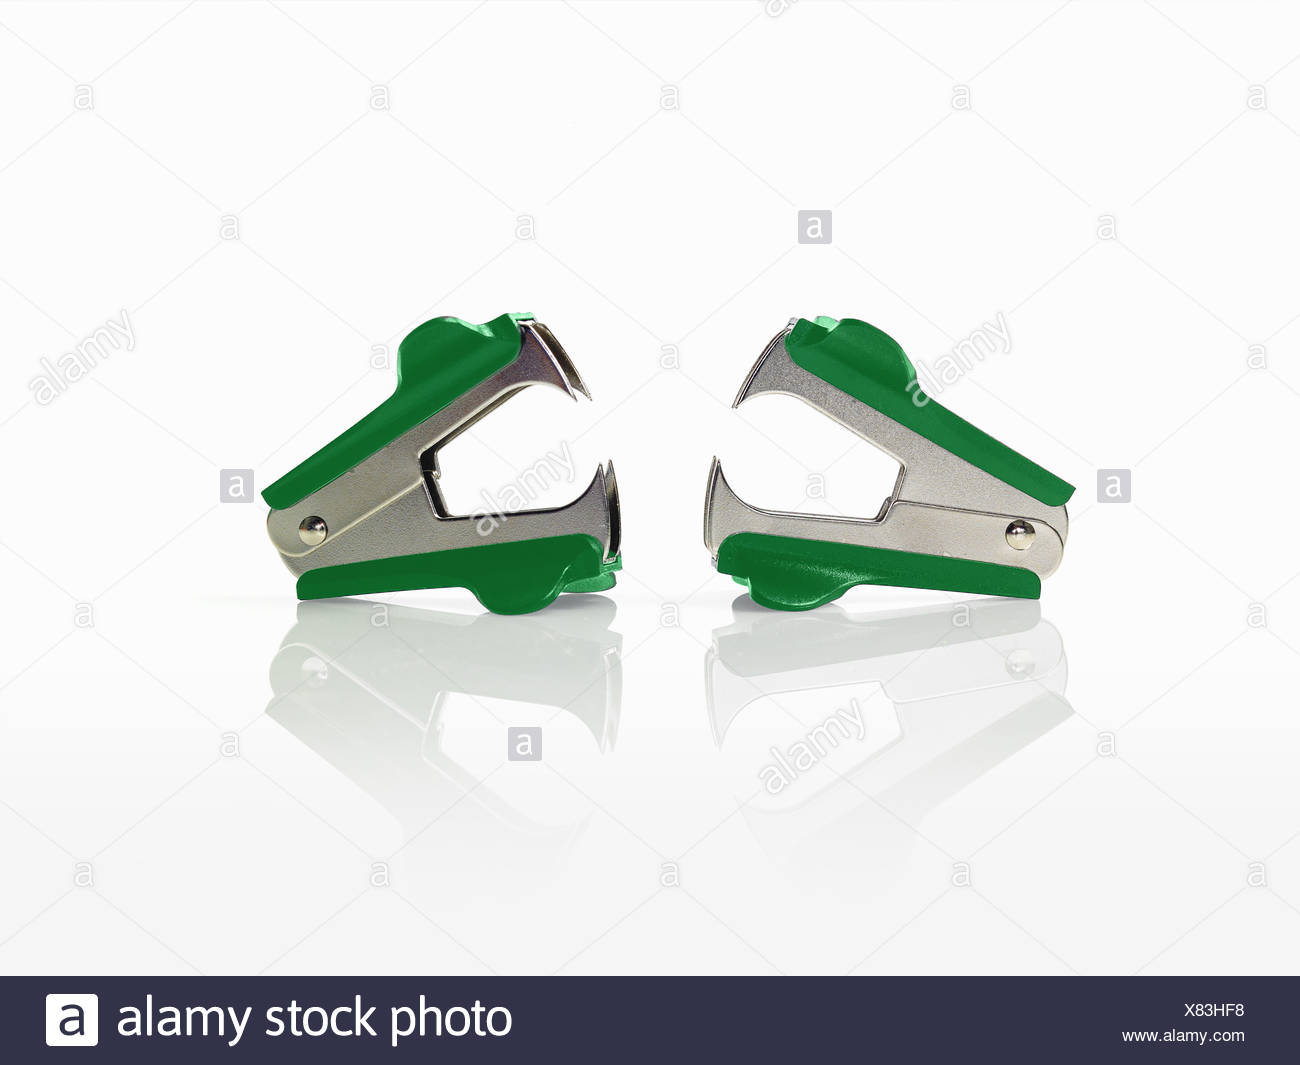 Two paperclip pincer removers. Stock Photo